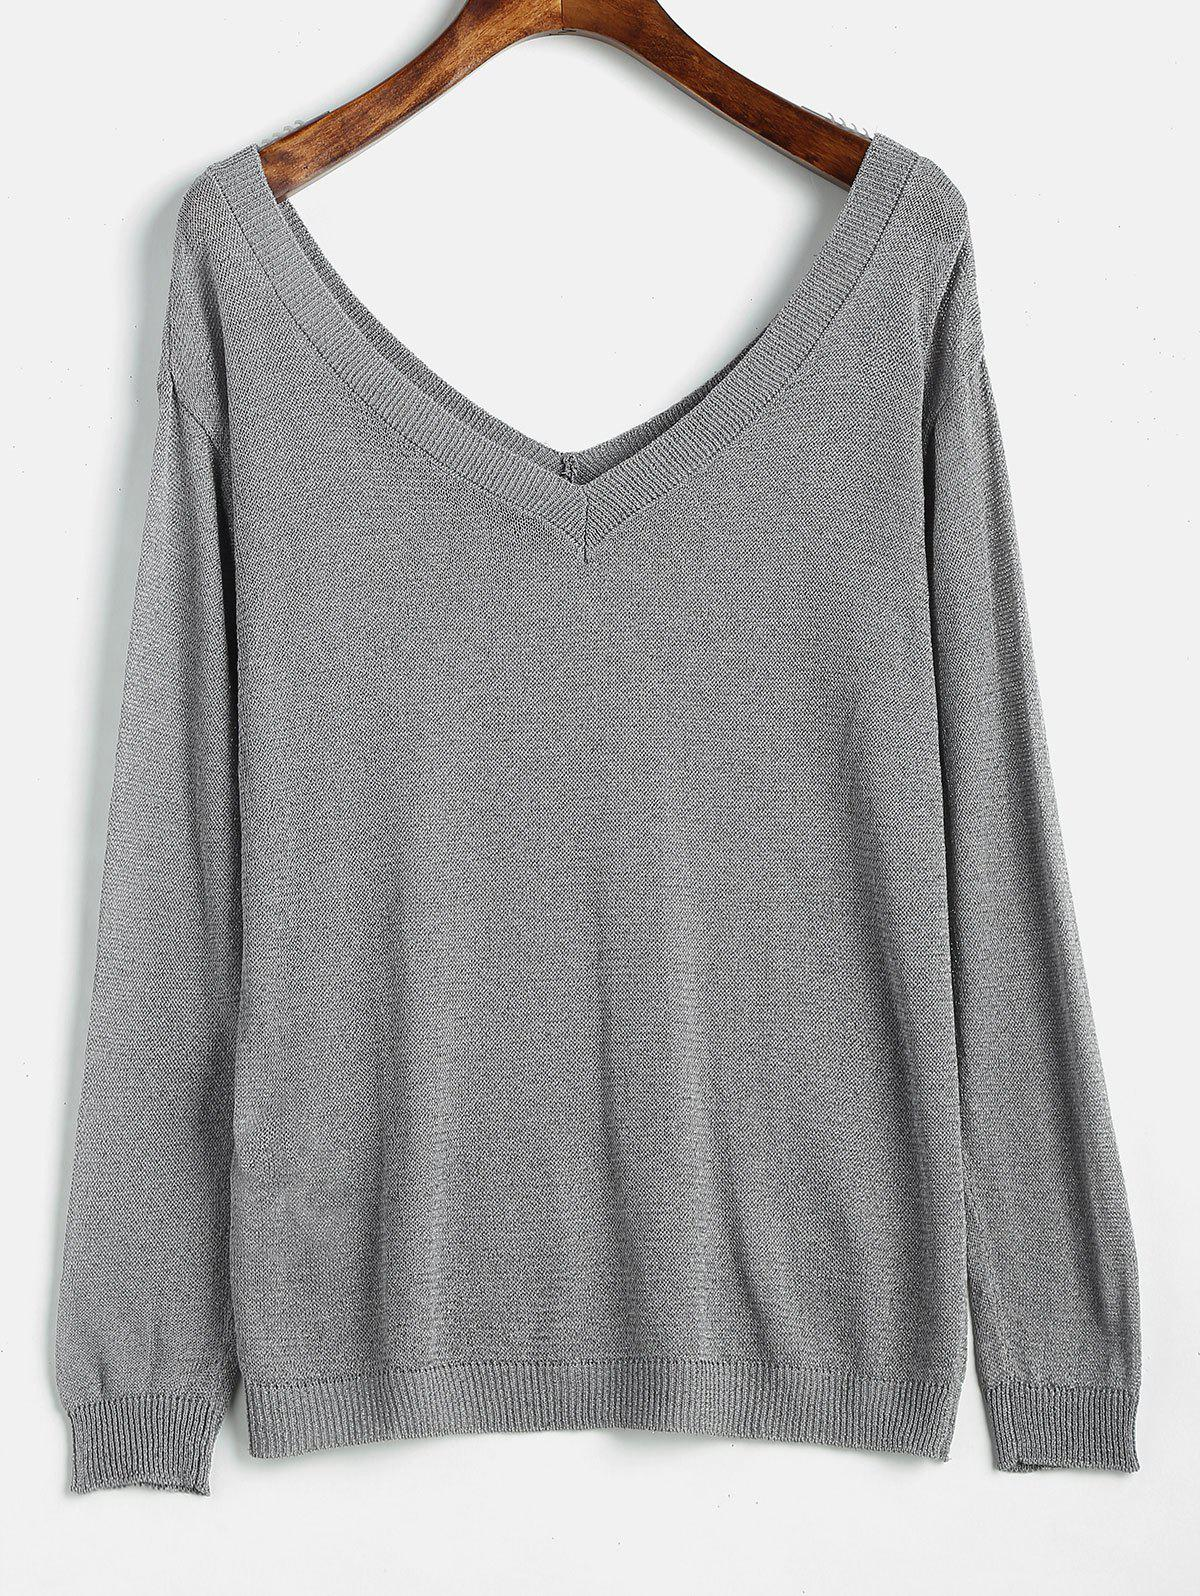 Low Cut Backless Knit Tee